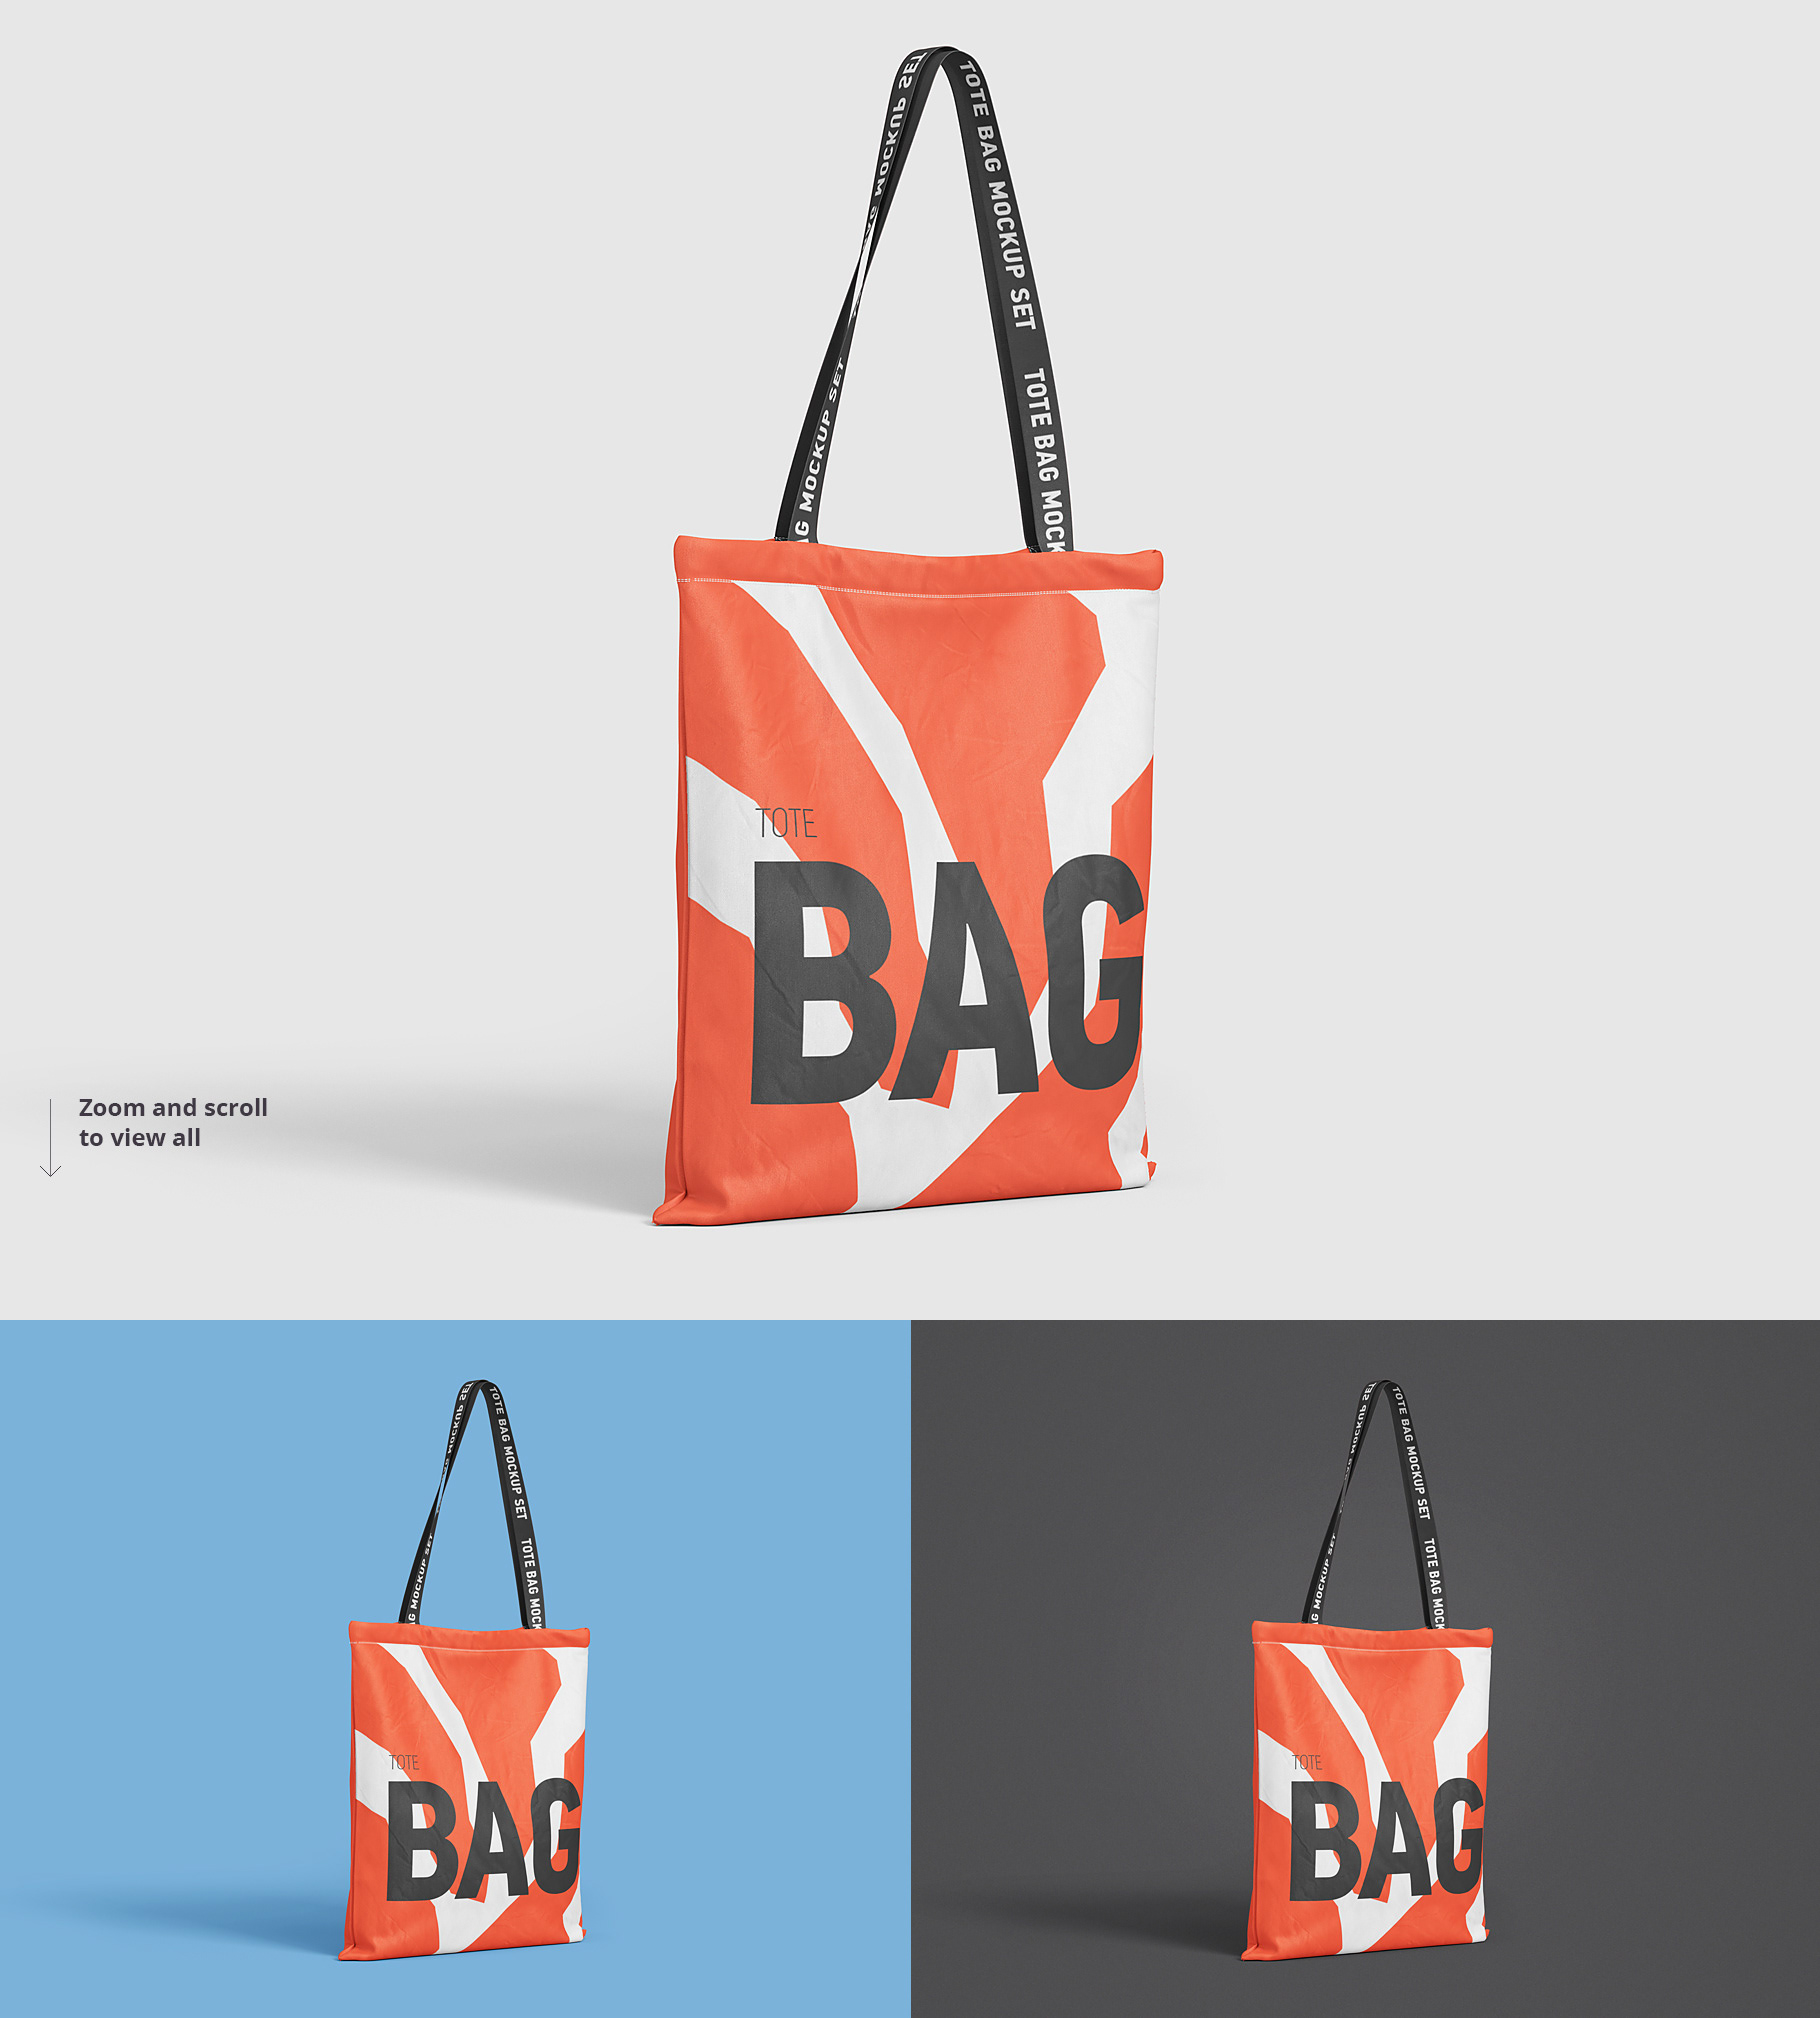 Download free 38+ tote bag mockup behance png , you can use tote bag mock up free to showcase your design in a photorealistic look. 3d Tote Bag Mockup Behance